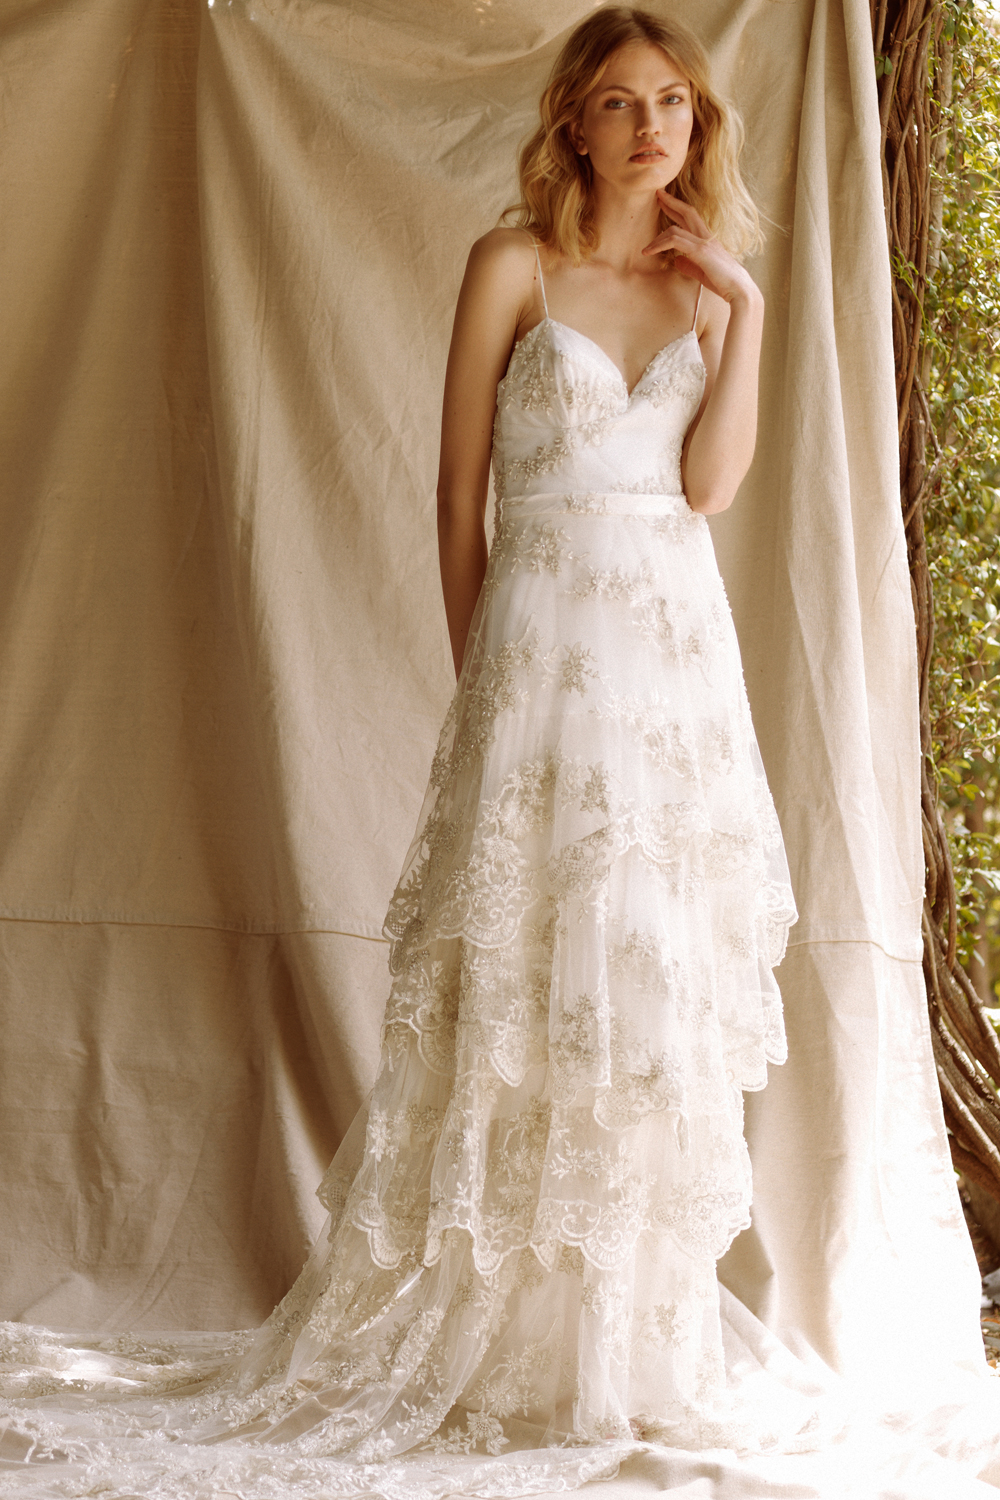 Free People unveil new bohoinspired wedding dress collection